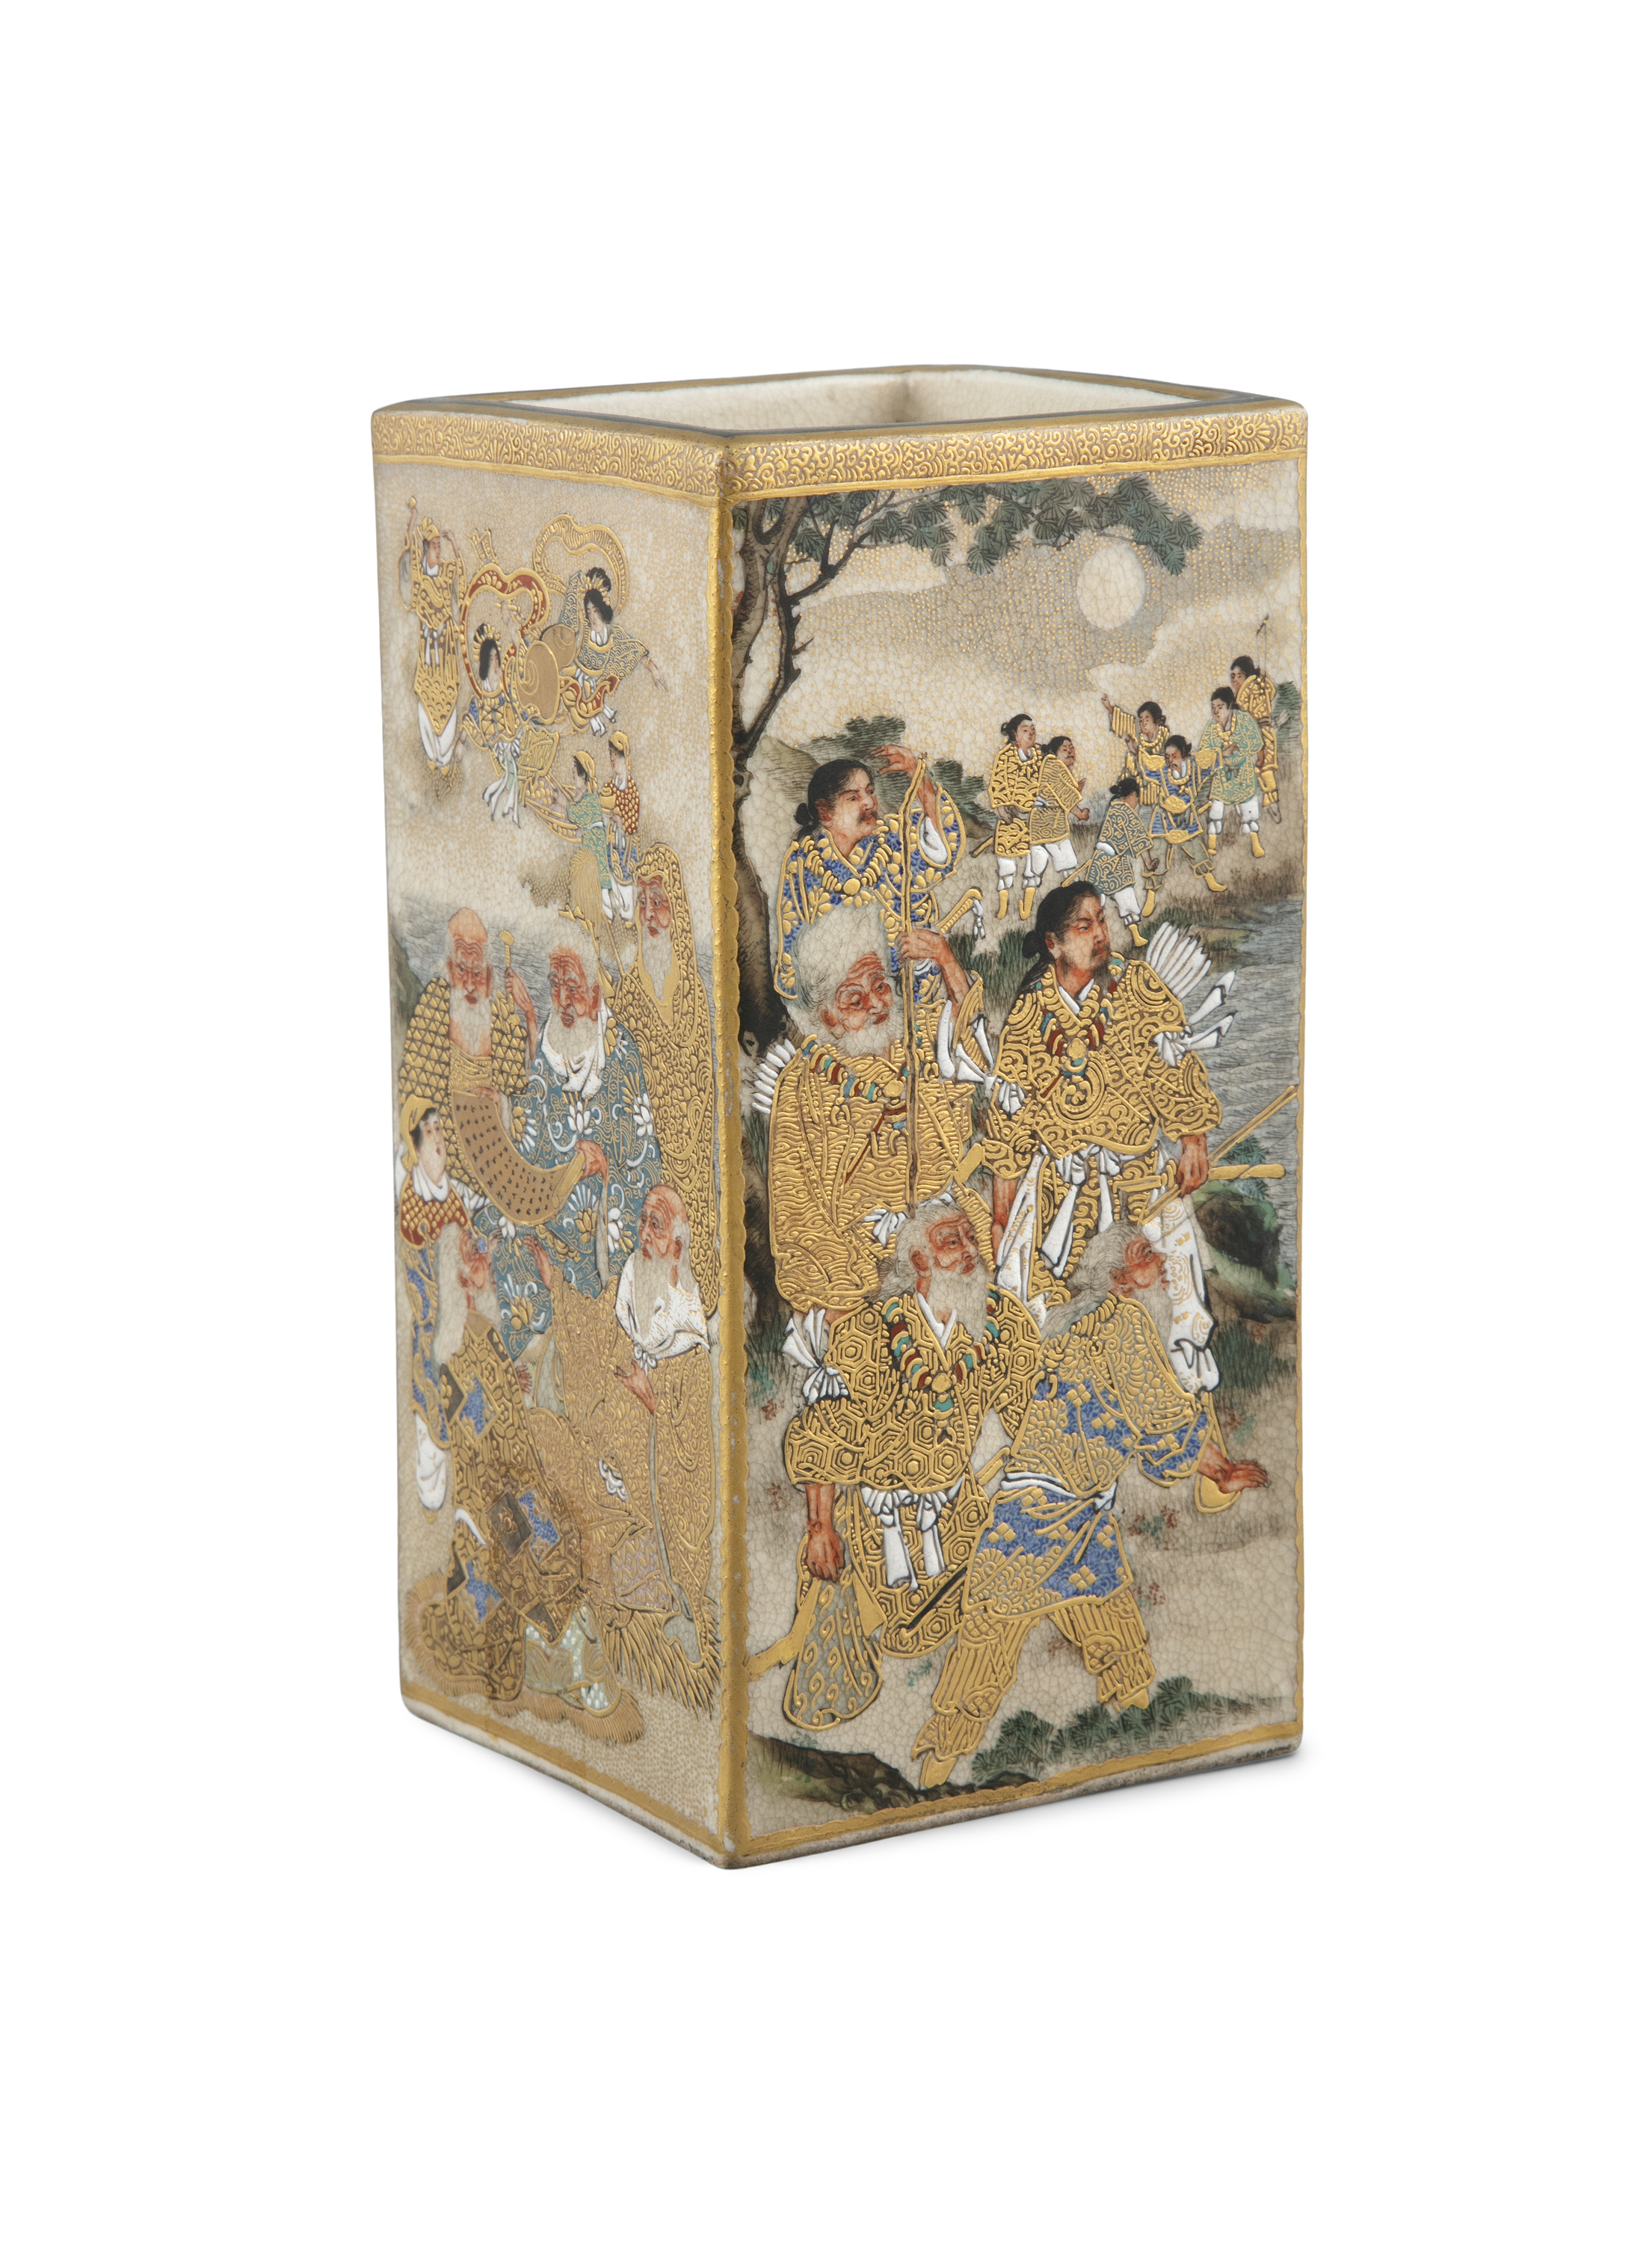 A SATSUMA 'WARRIORS' SQUARE POT POSSIBLY BY RYUZAN 龍山 Japan, Meiji period Richly adorned in gilt and - Image 2 of 14